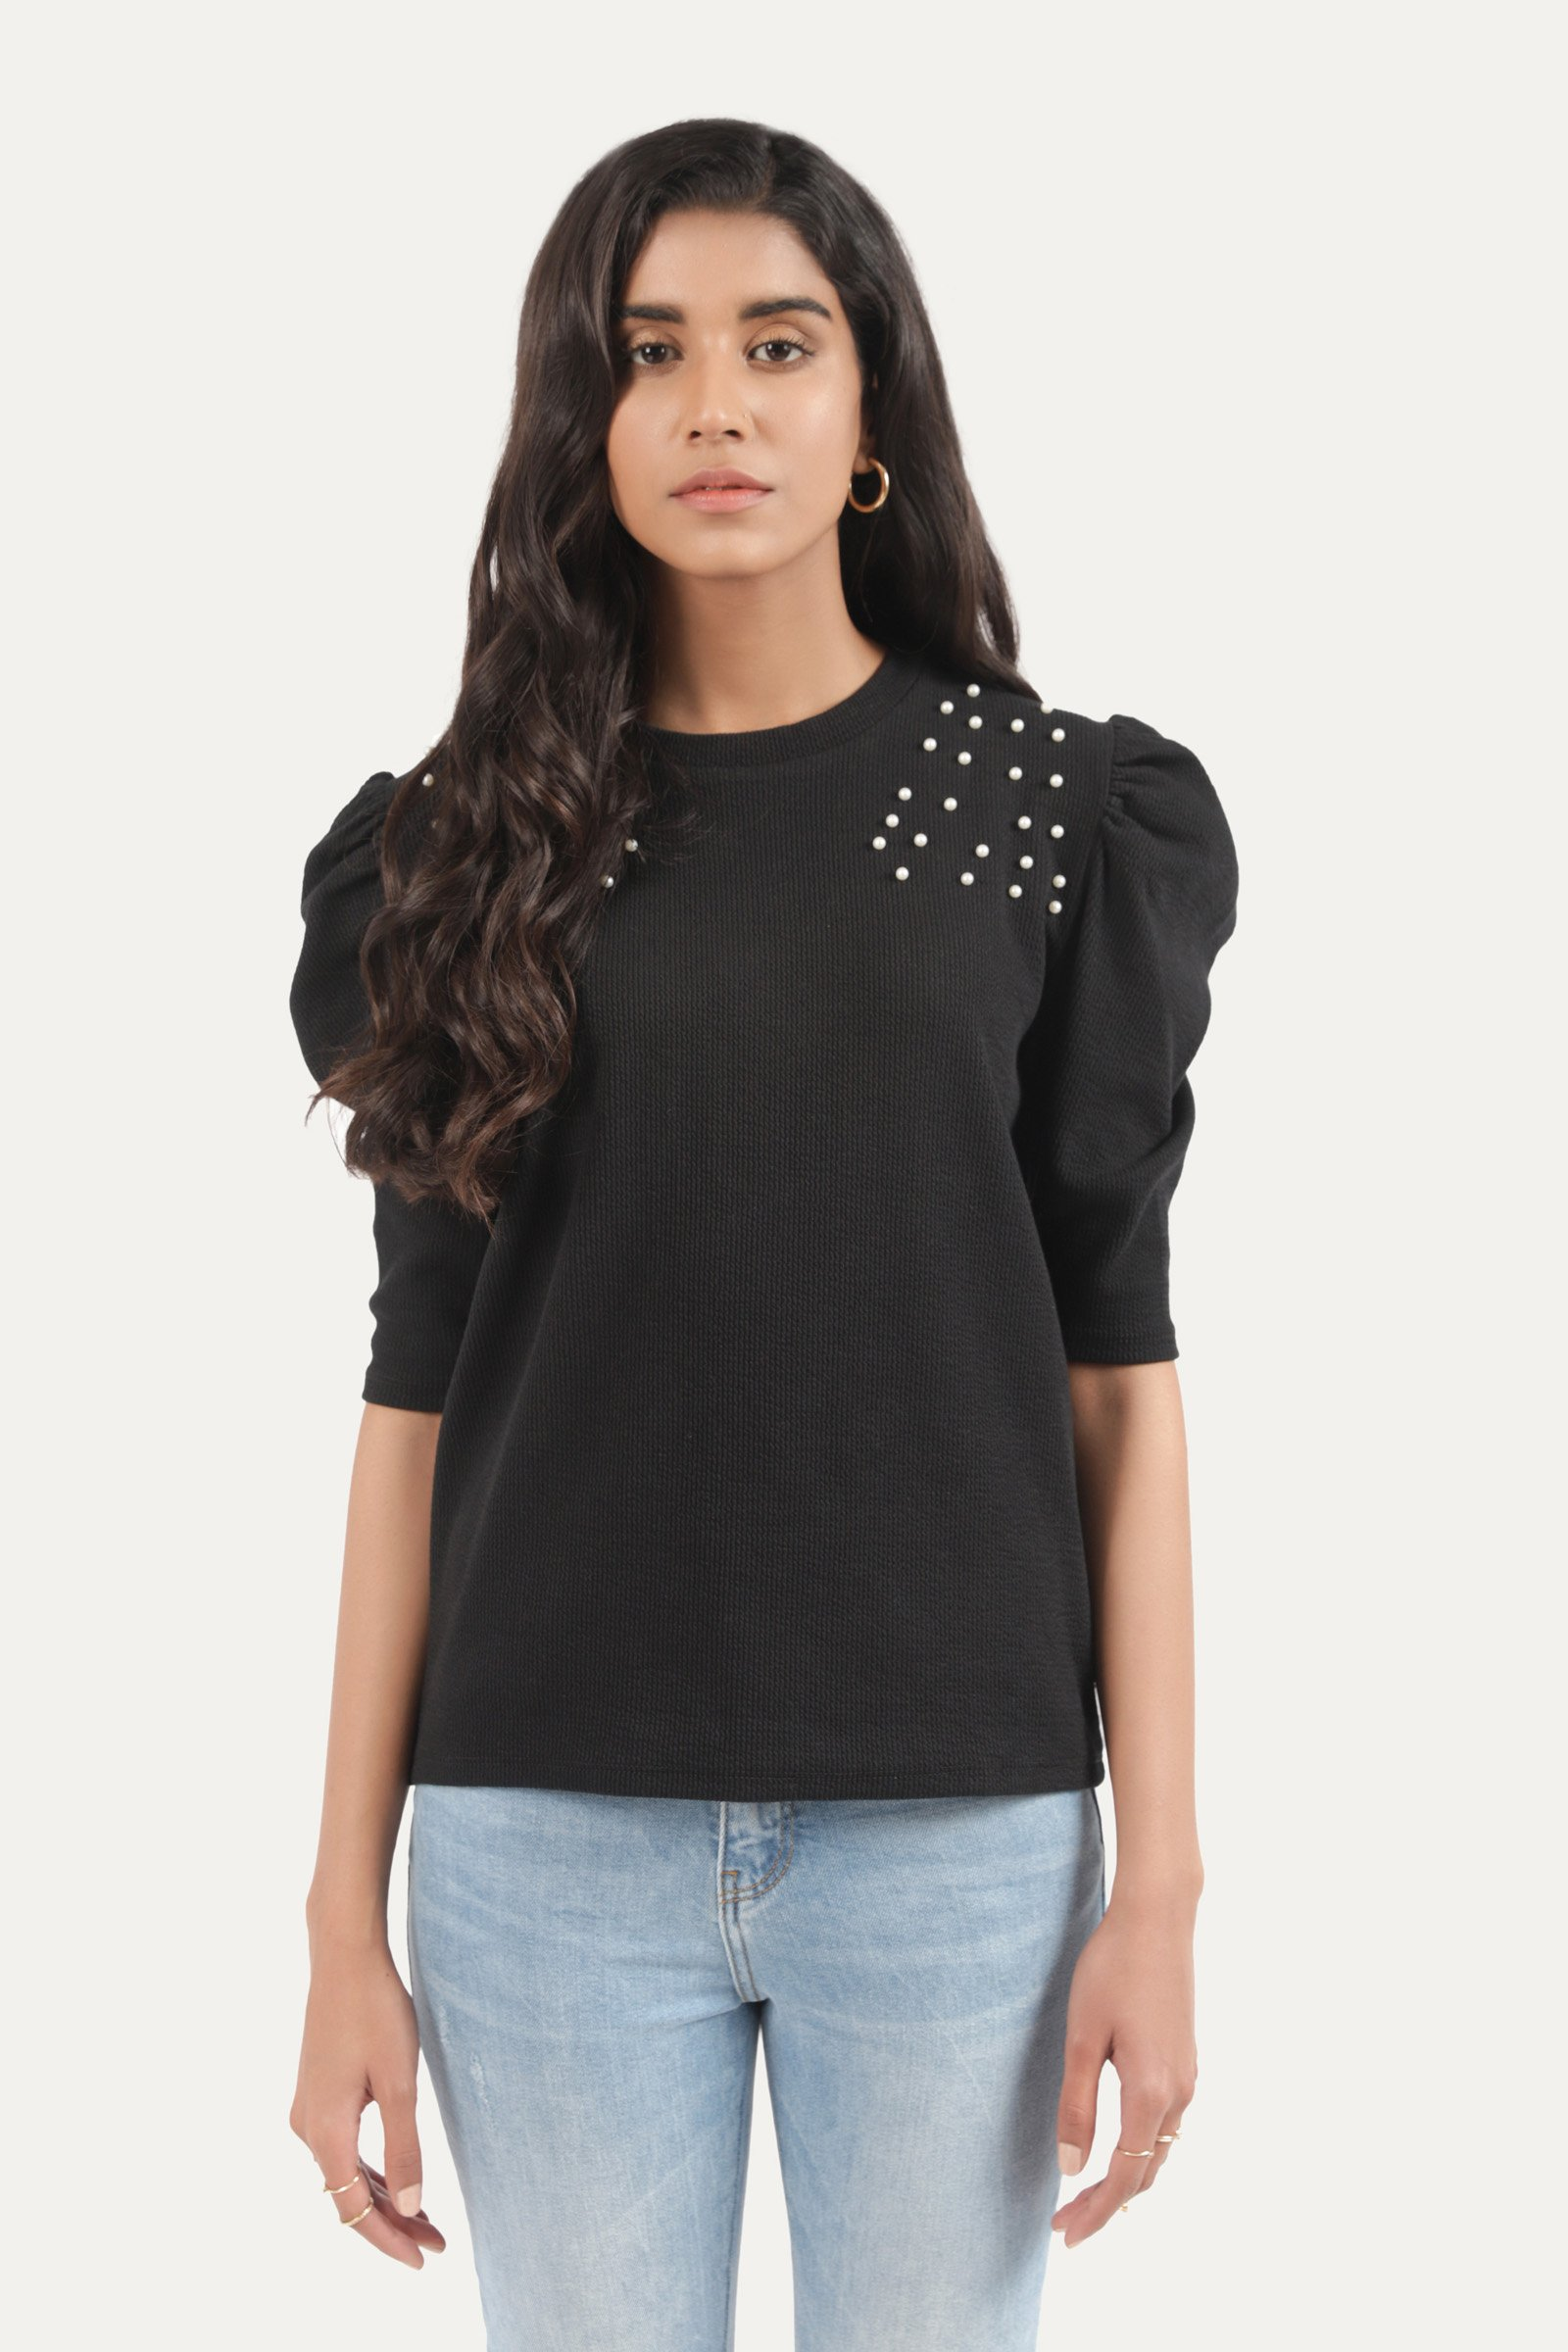 Outfitters Ruffled sleeves T-Shirt